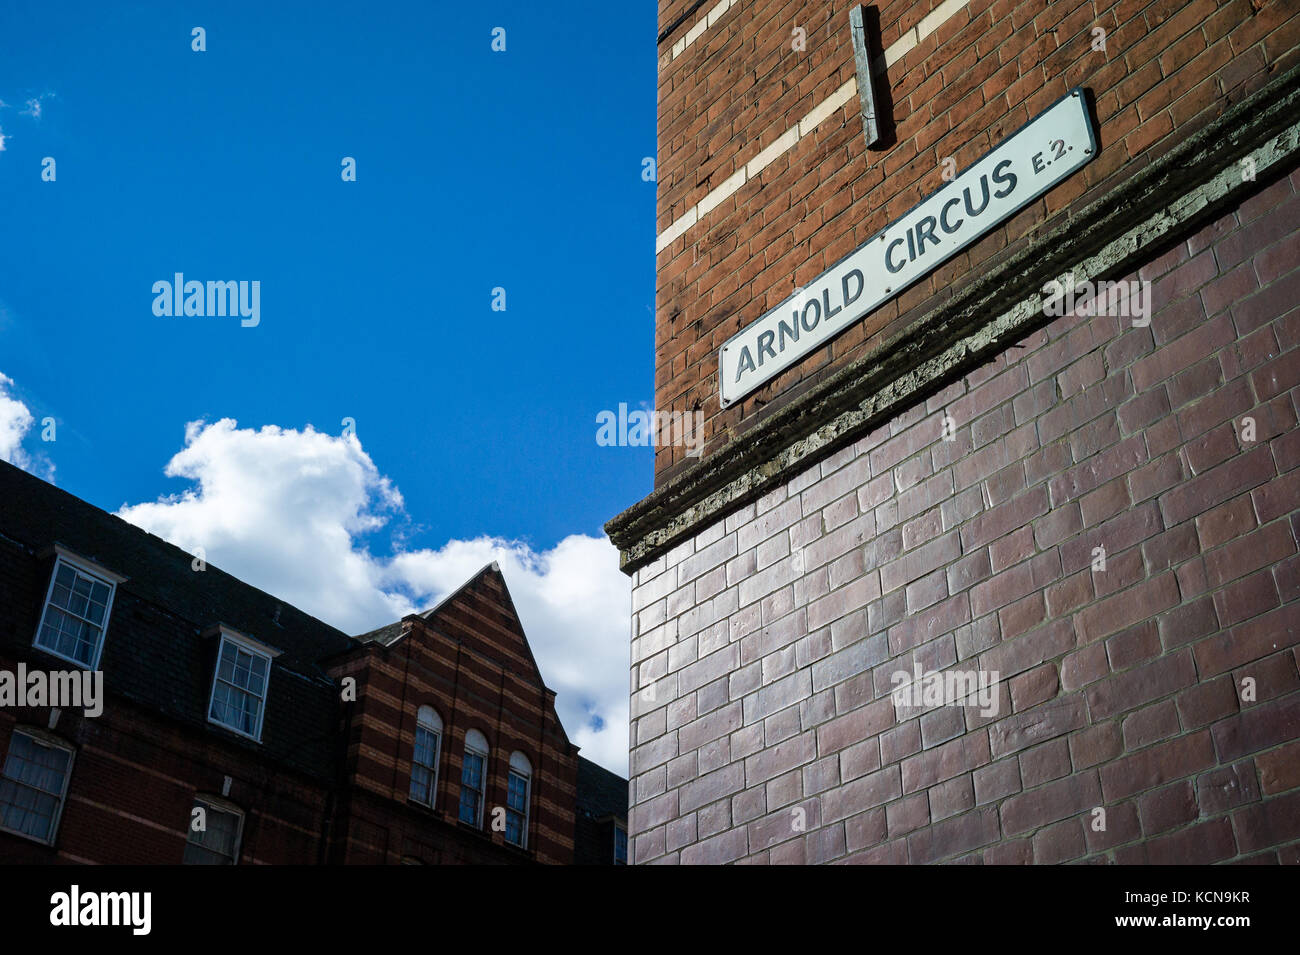 Arnold Circus street sign on the Boundary Estate in Shoreditch, East London. Opened in 1900. Built by LCC arguably, - Stock Image